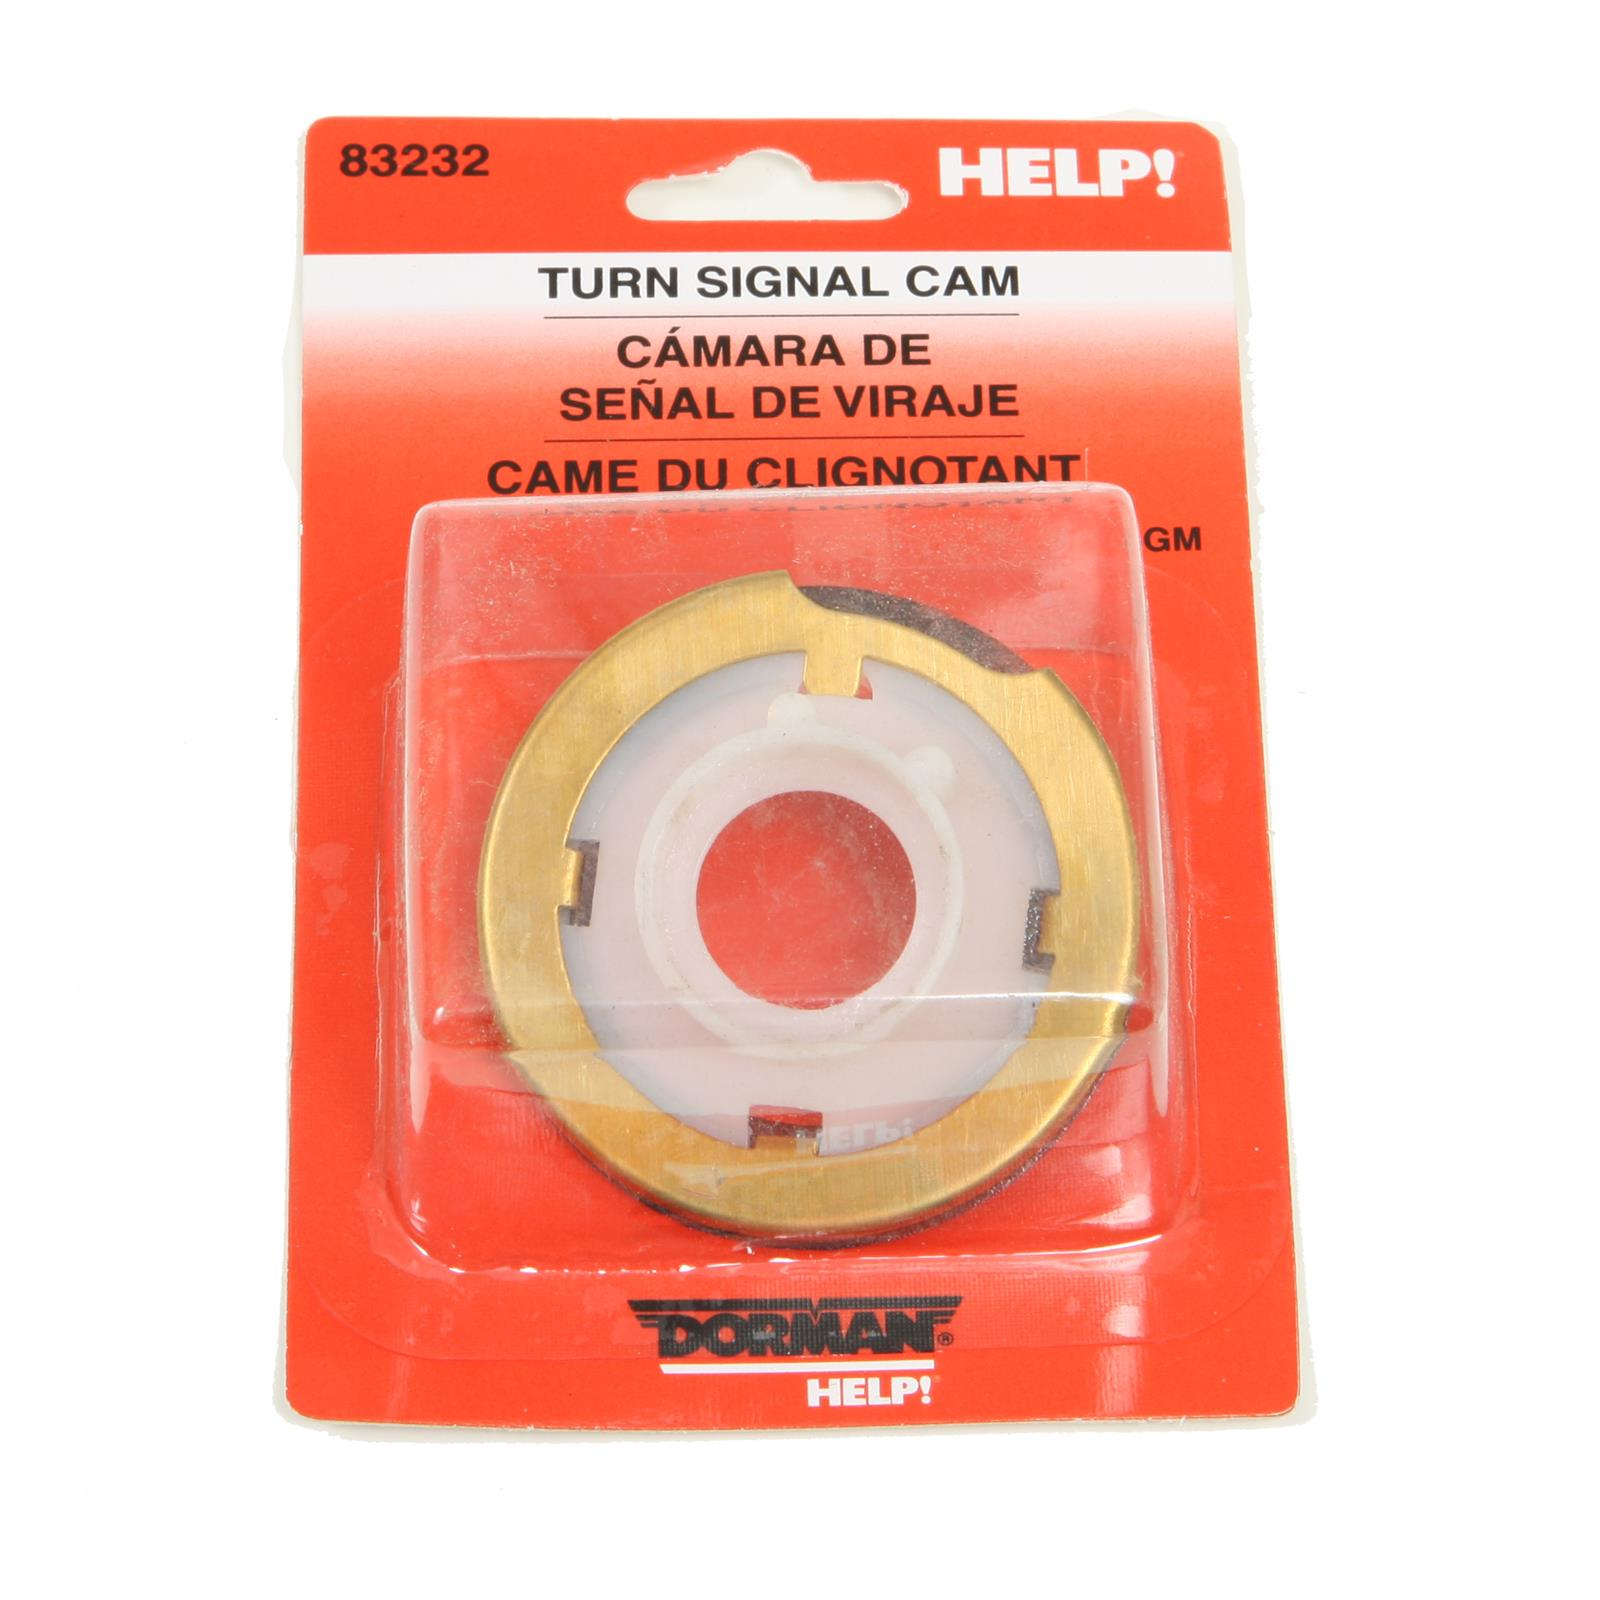 hight resolution of dorman turn signal repair kits 83232 free shipping on orders over 99 at summit racing